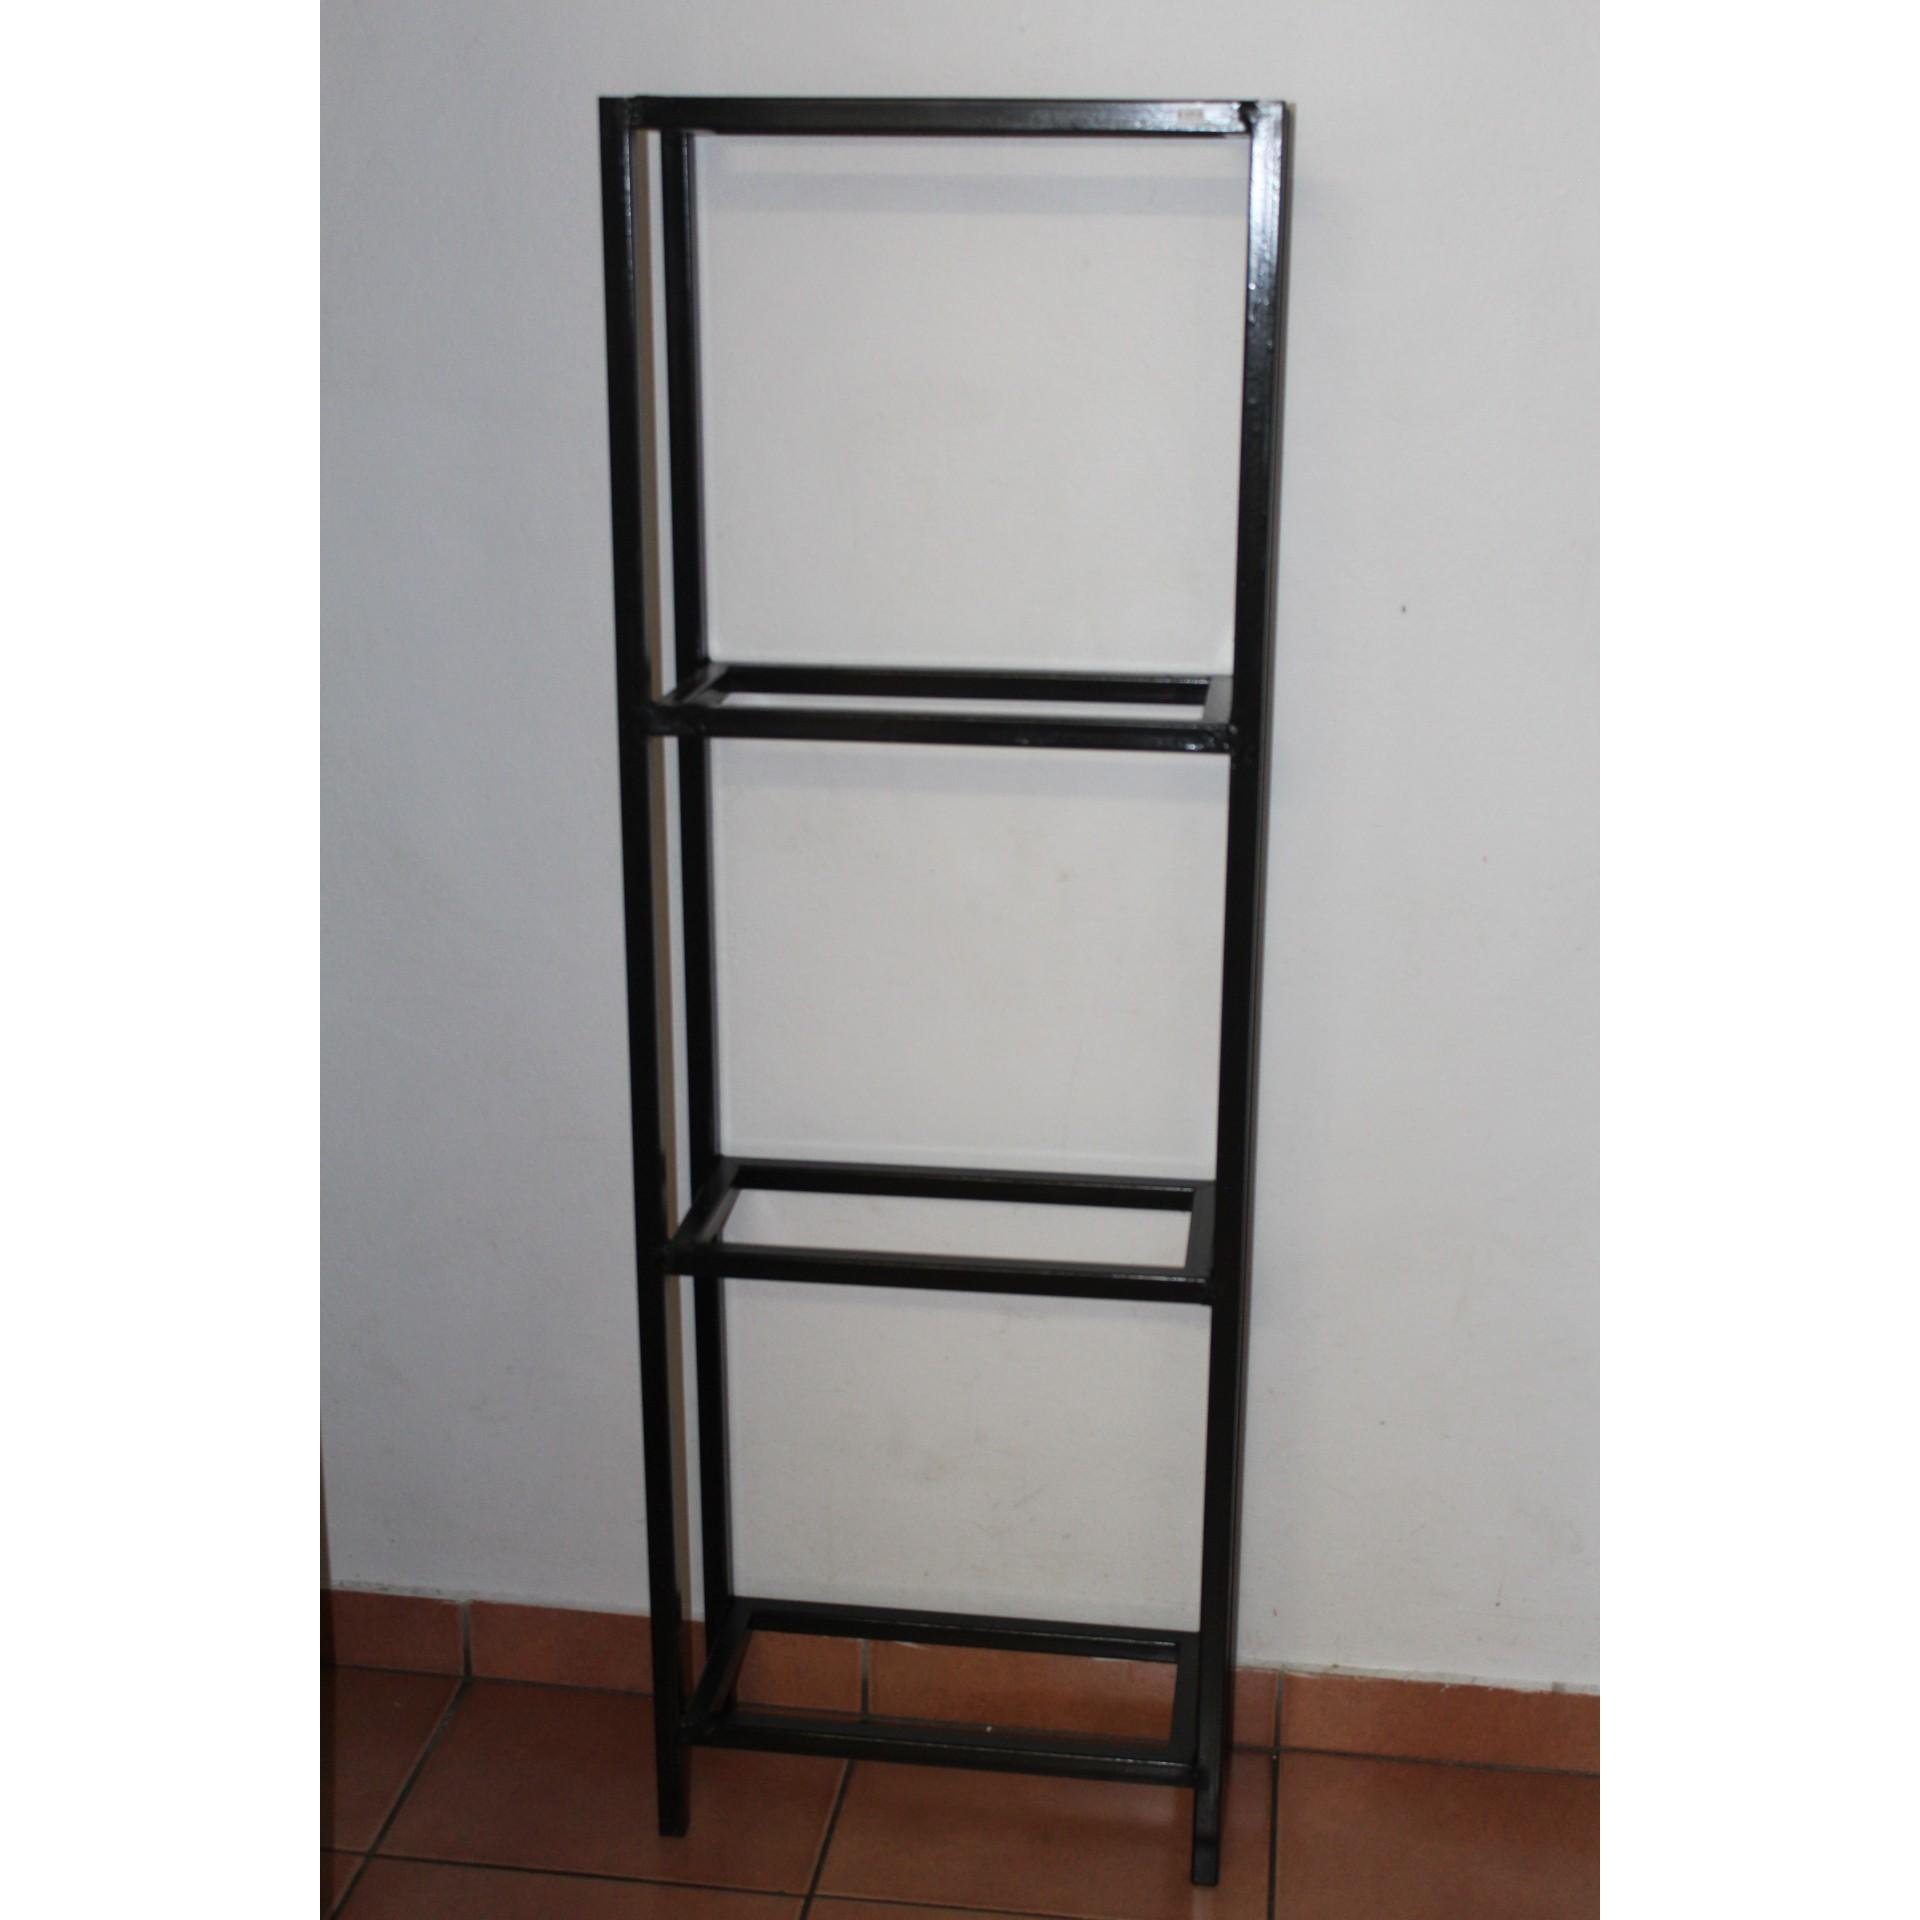 3 tier stand.  Fits 3x 1 1/2ft (45cm) Tanks